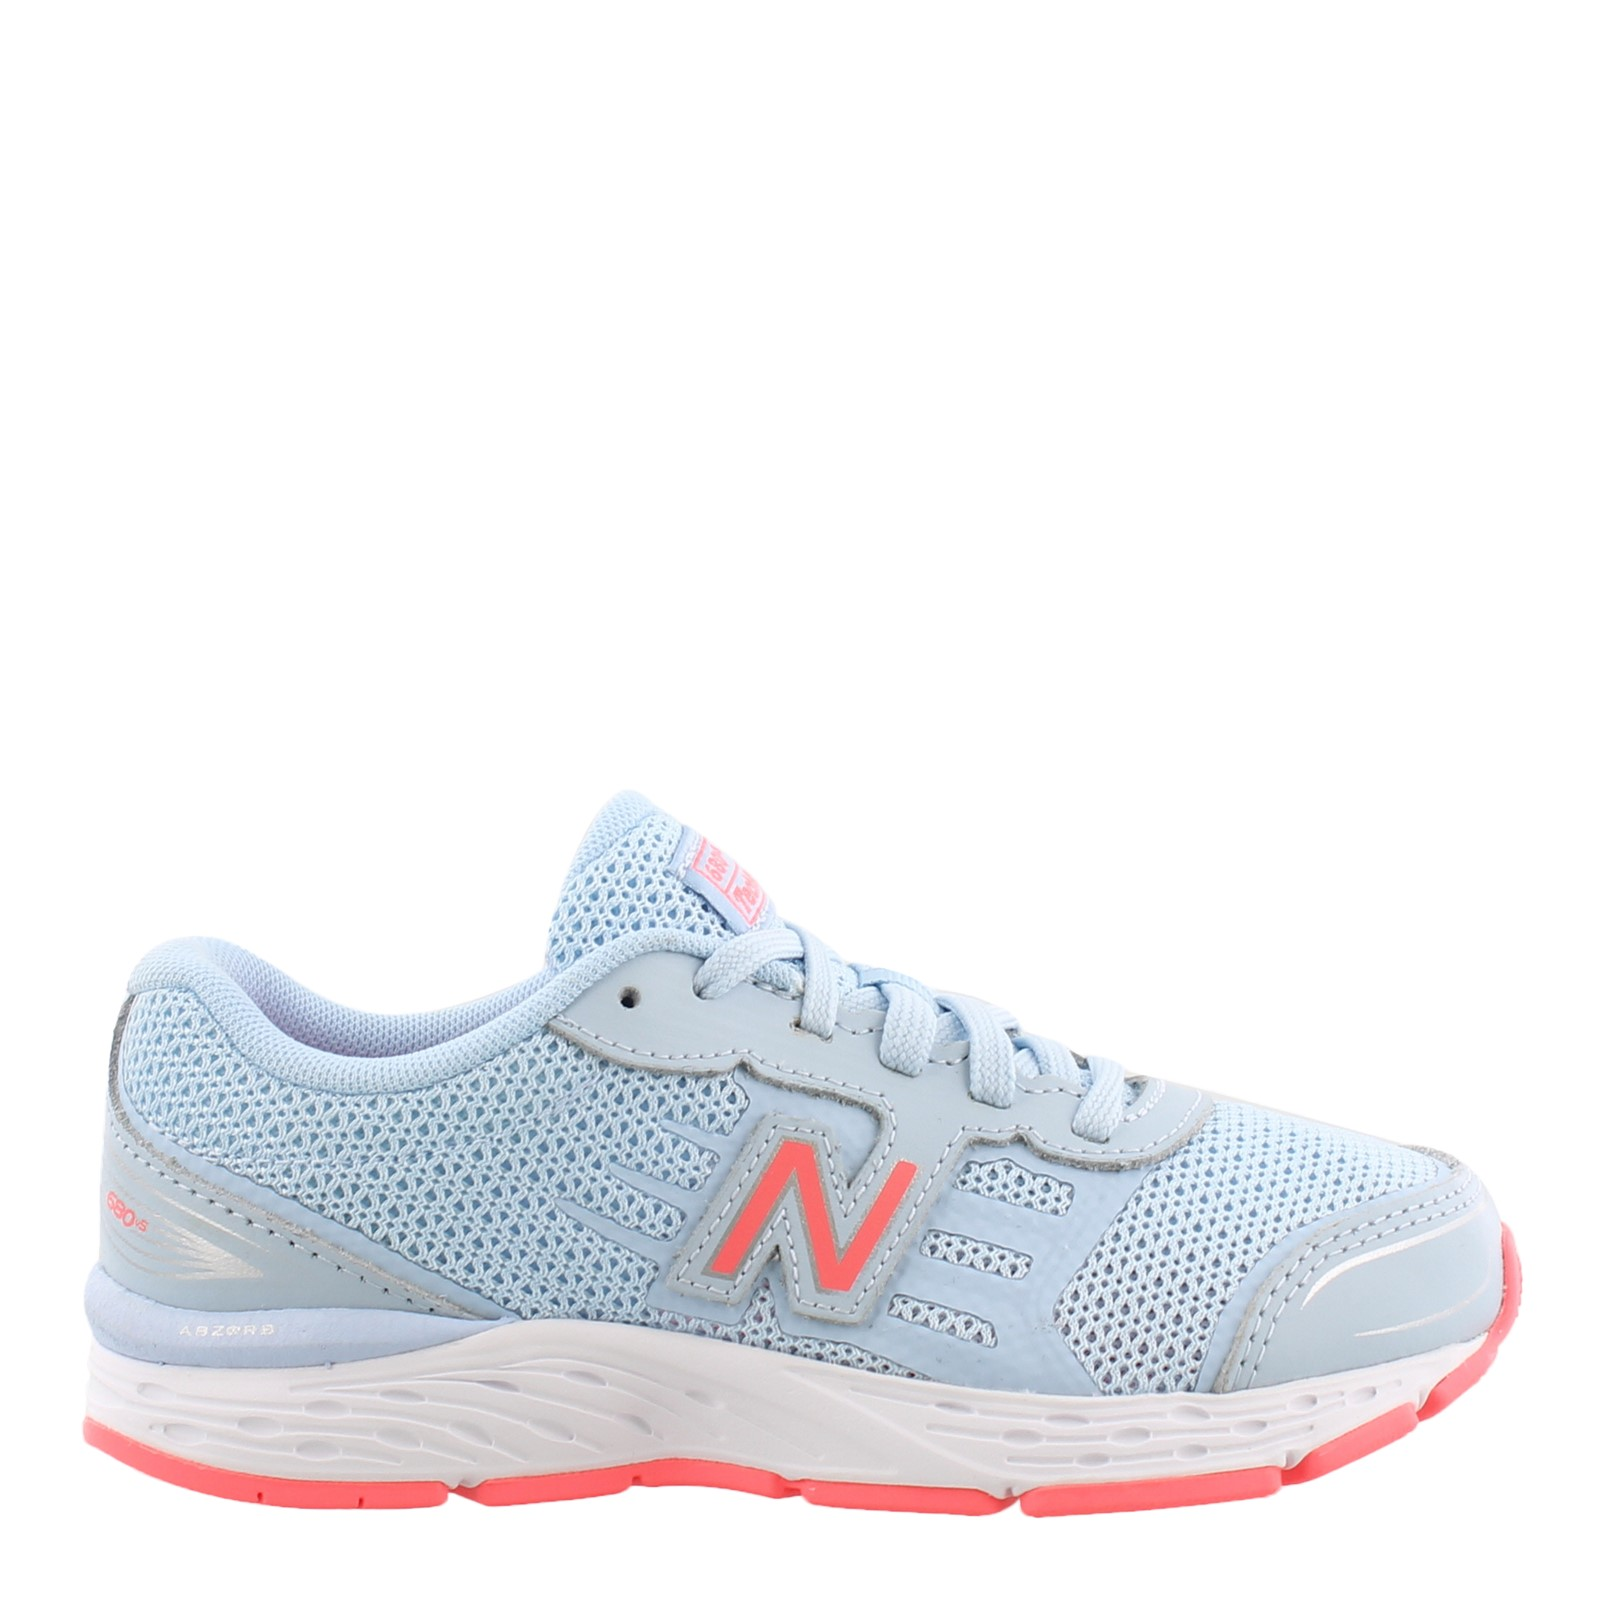 Girl's New Balance, 680 v5 Athletic Sneaker